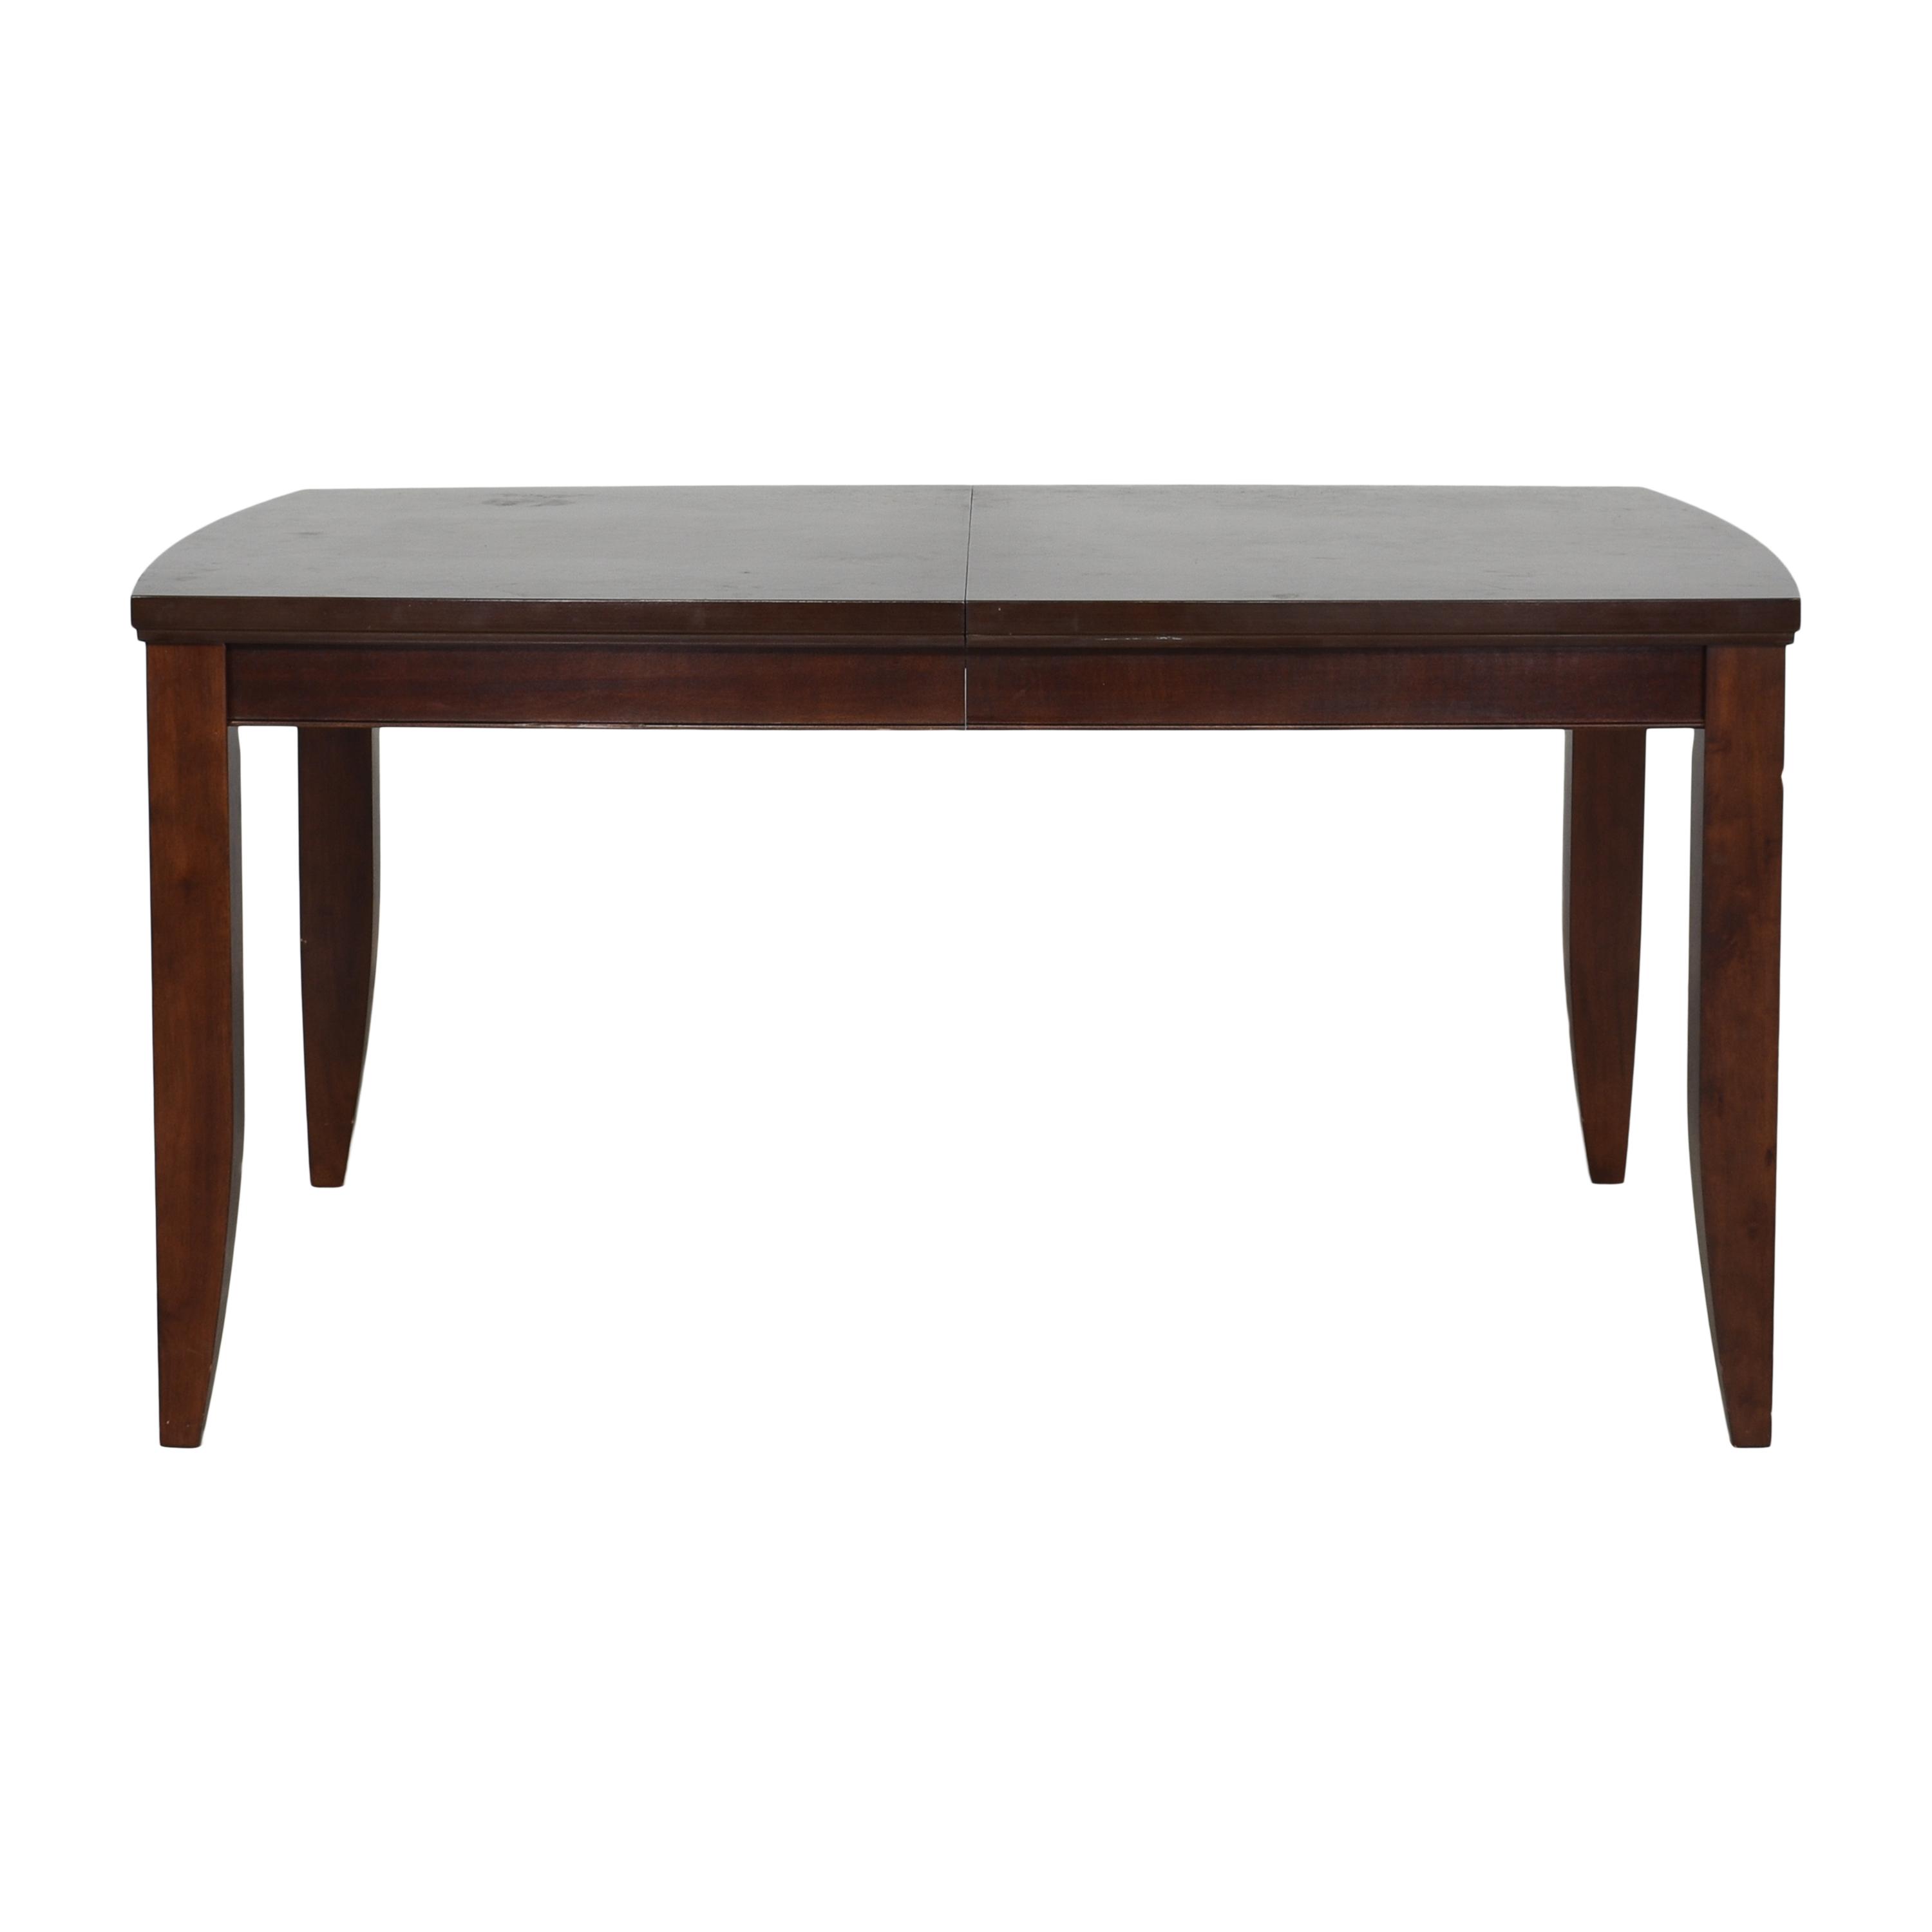 shop Macy's Matteo Extendable Dining Table Macy's Tables